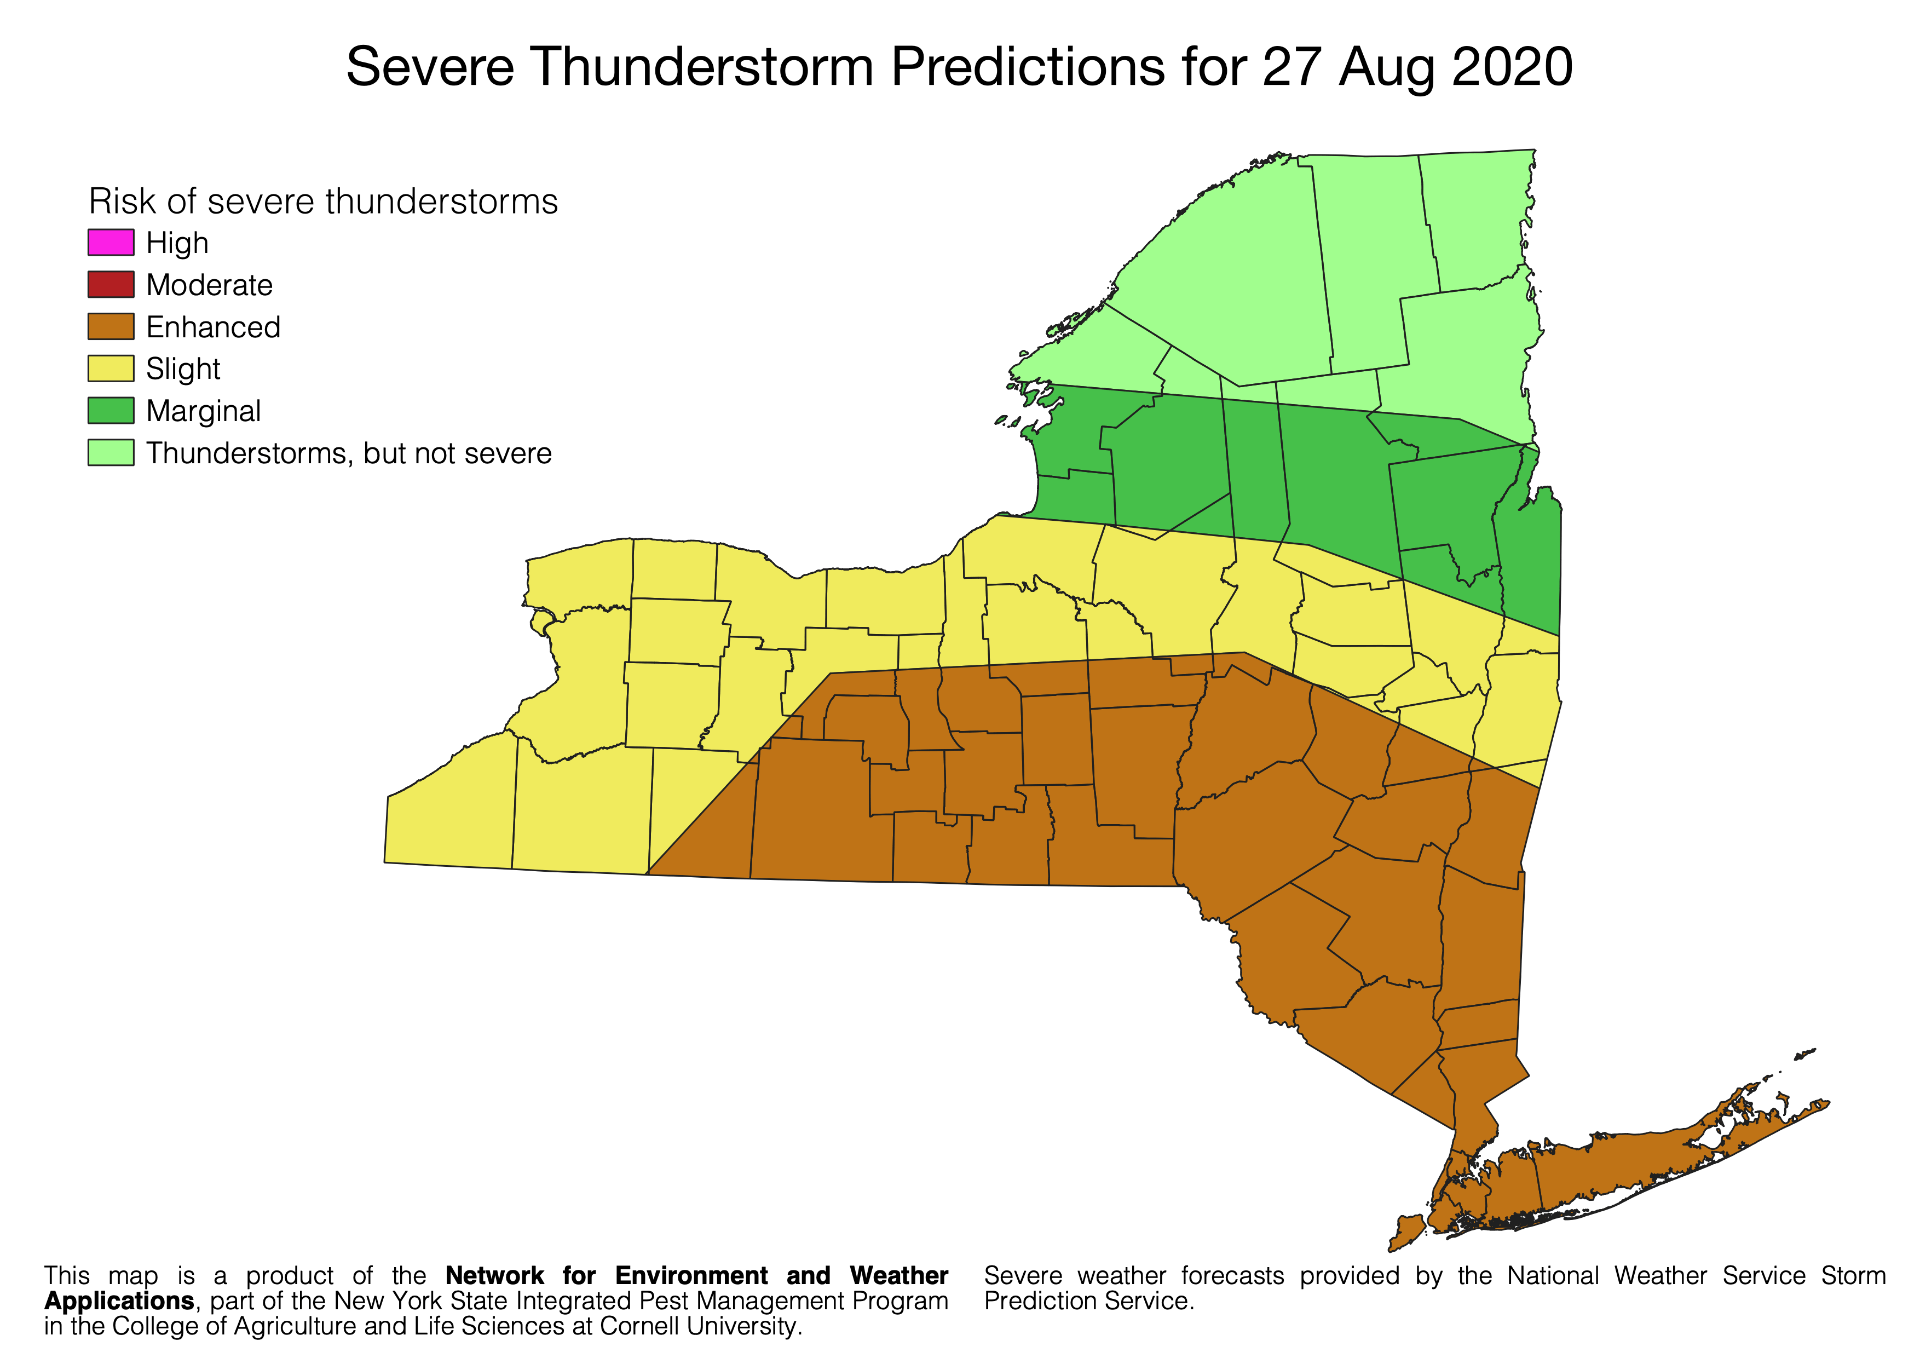 27 Aug 2020 severe thunderstorm predictions